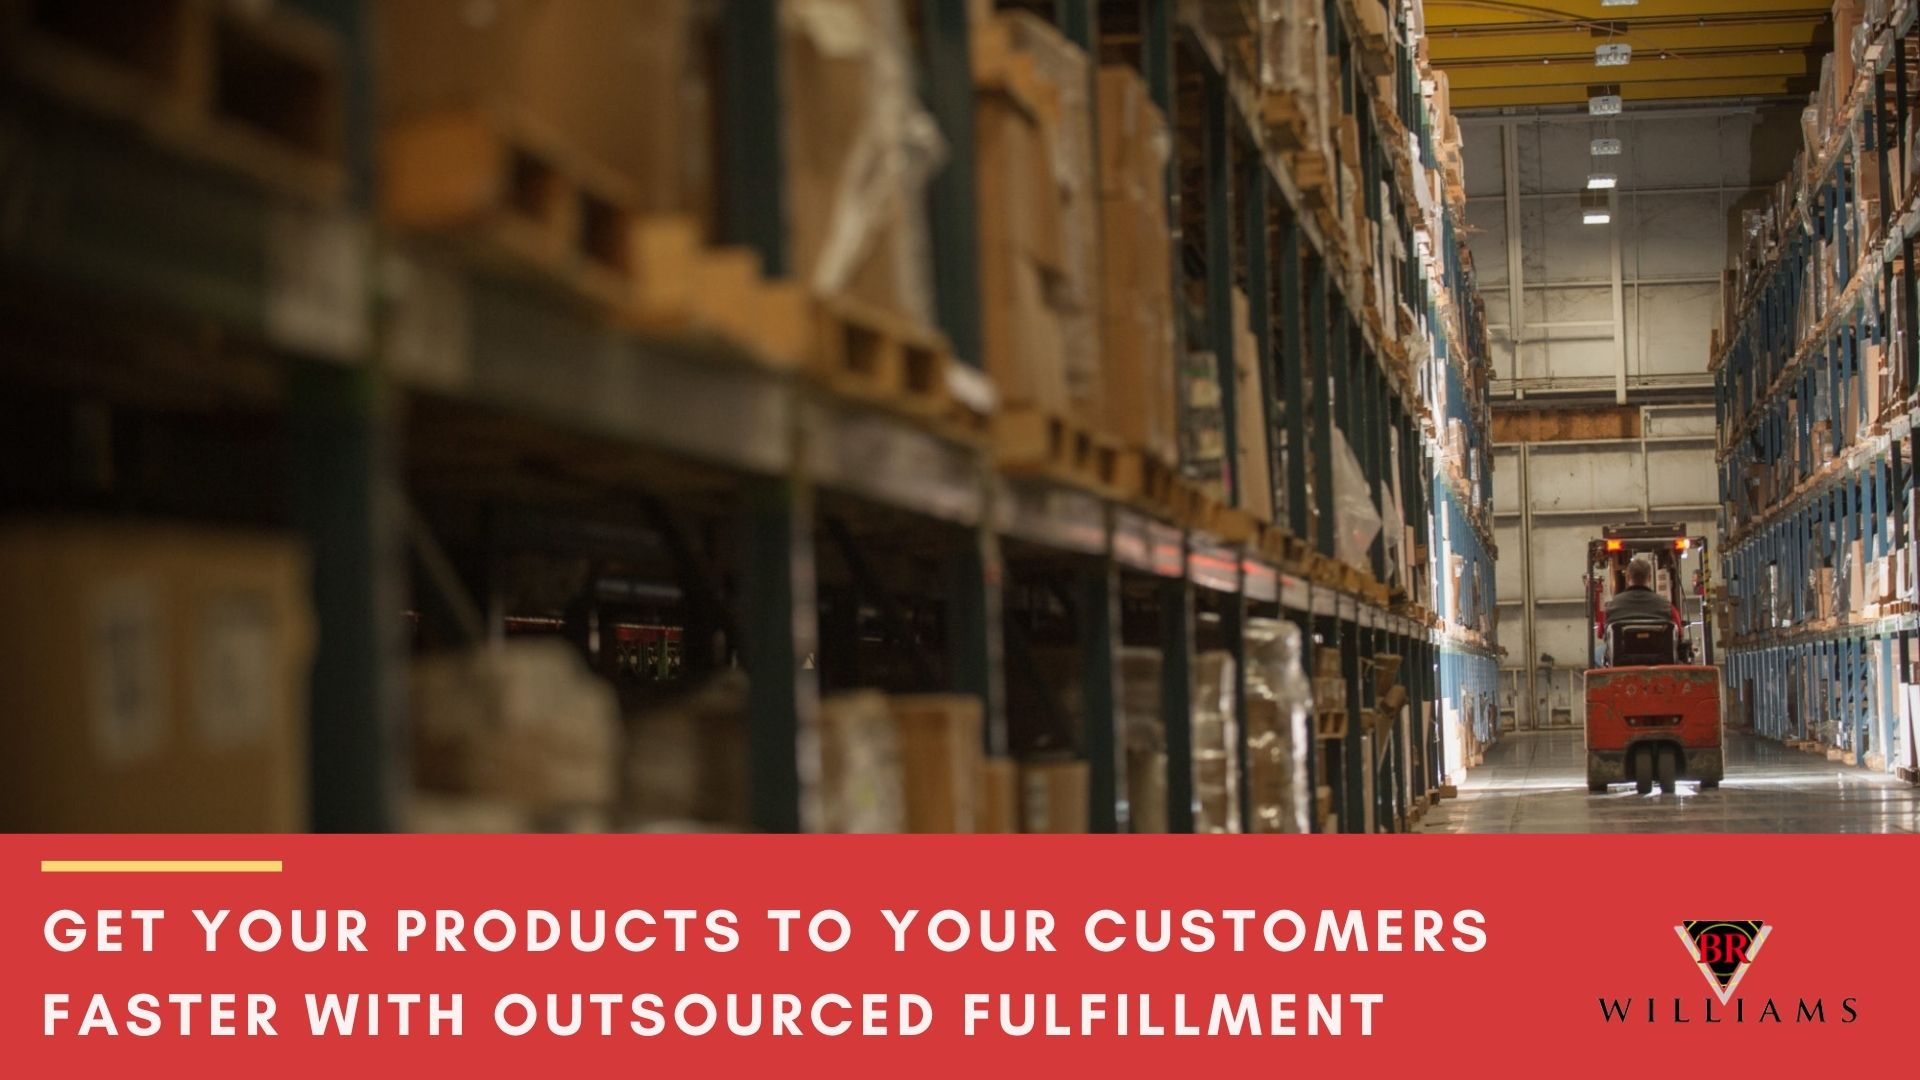 How to Get Your Products to Your Customers Faster with Outsourced Fulfillment